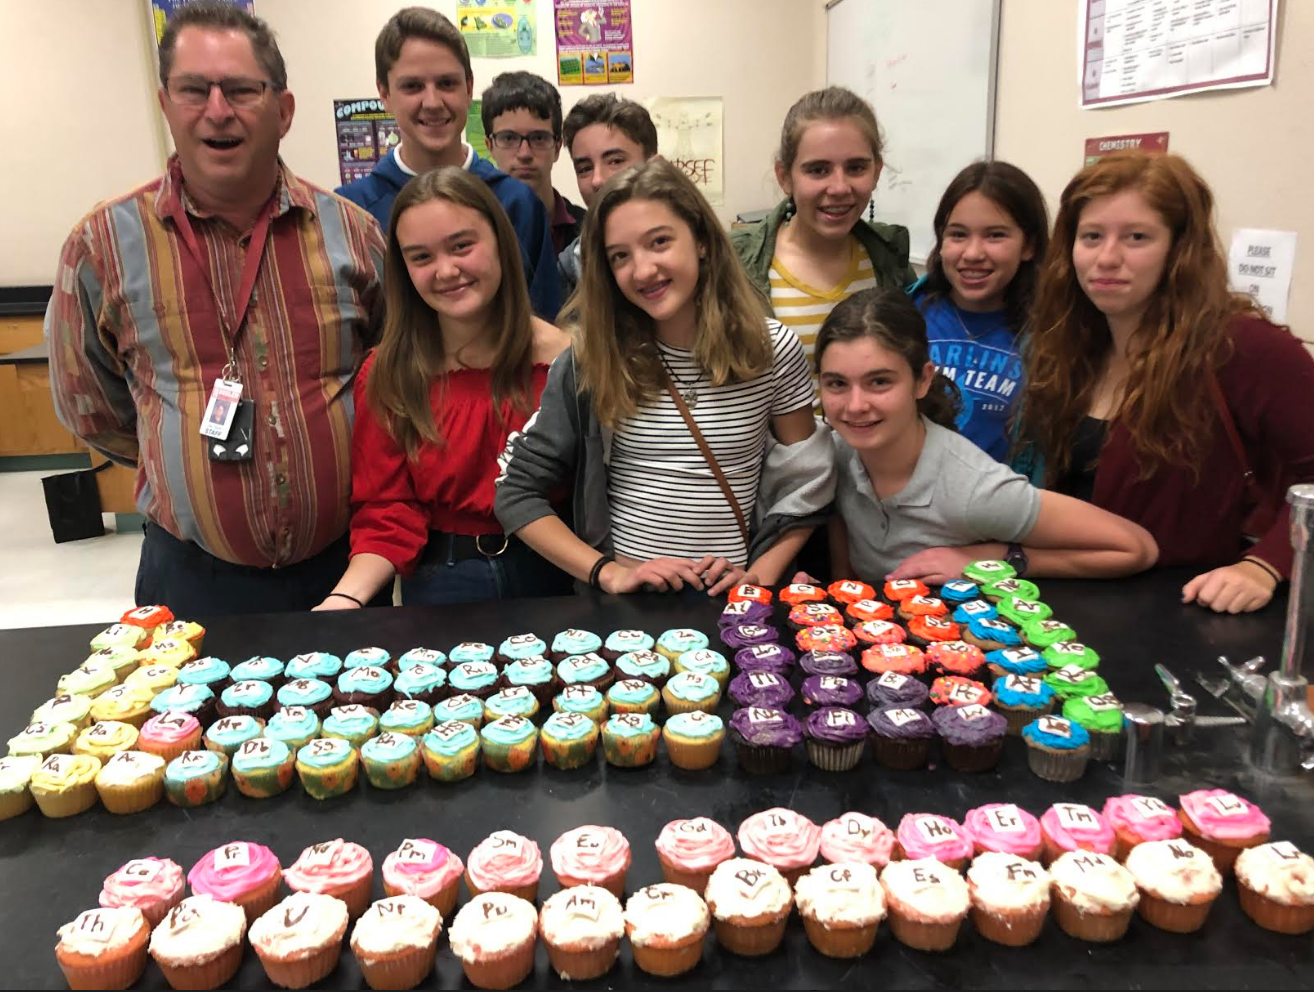 Isn't this what it's all about? Inspired by his fantastic teaching, these TUSD Doolen Middle School 8th Graders surprise Science teacher Ivan Yocum with 118 cupcakes arranged and decorated as elements on the Periodic Table. (Why do I know about this? Hint: my kitchen was the location for this culinary science experiment!).